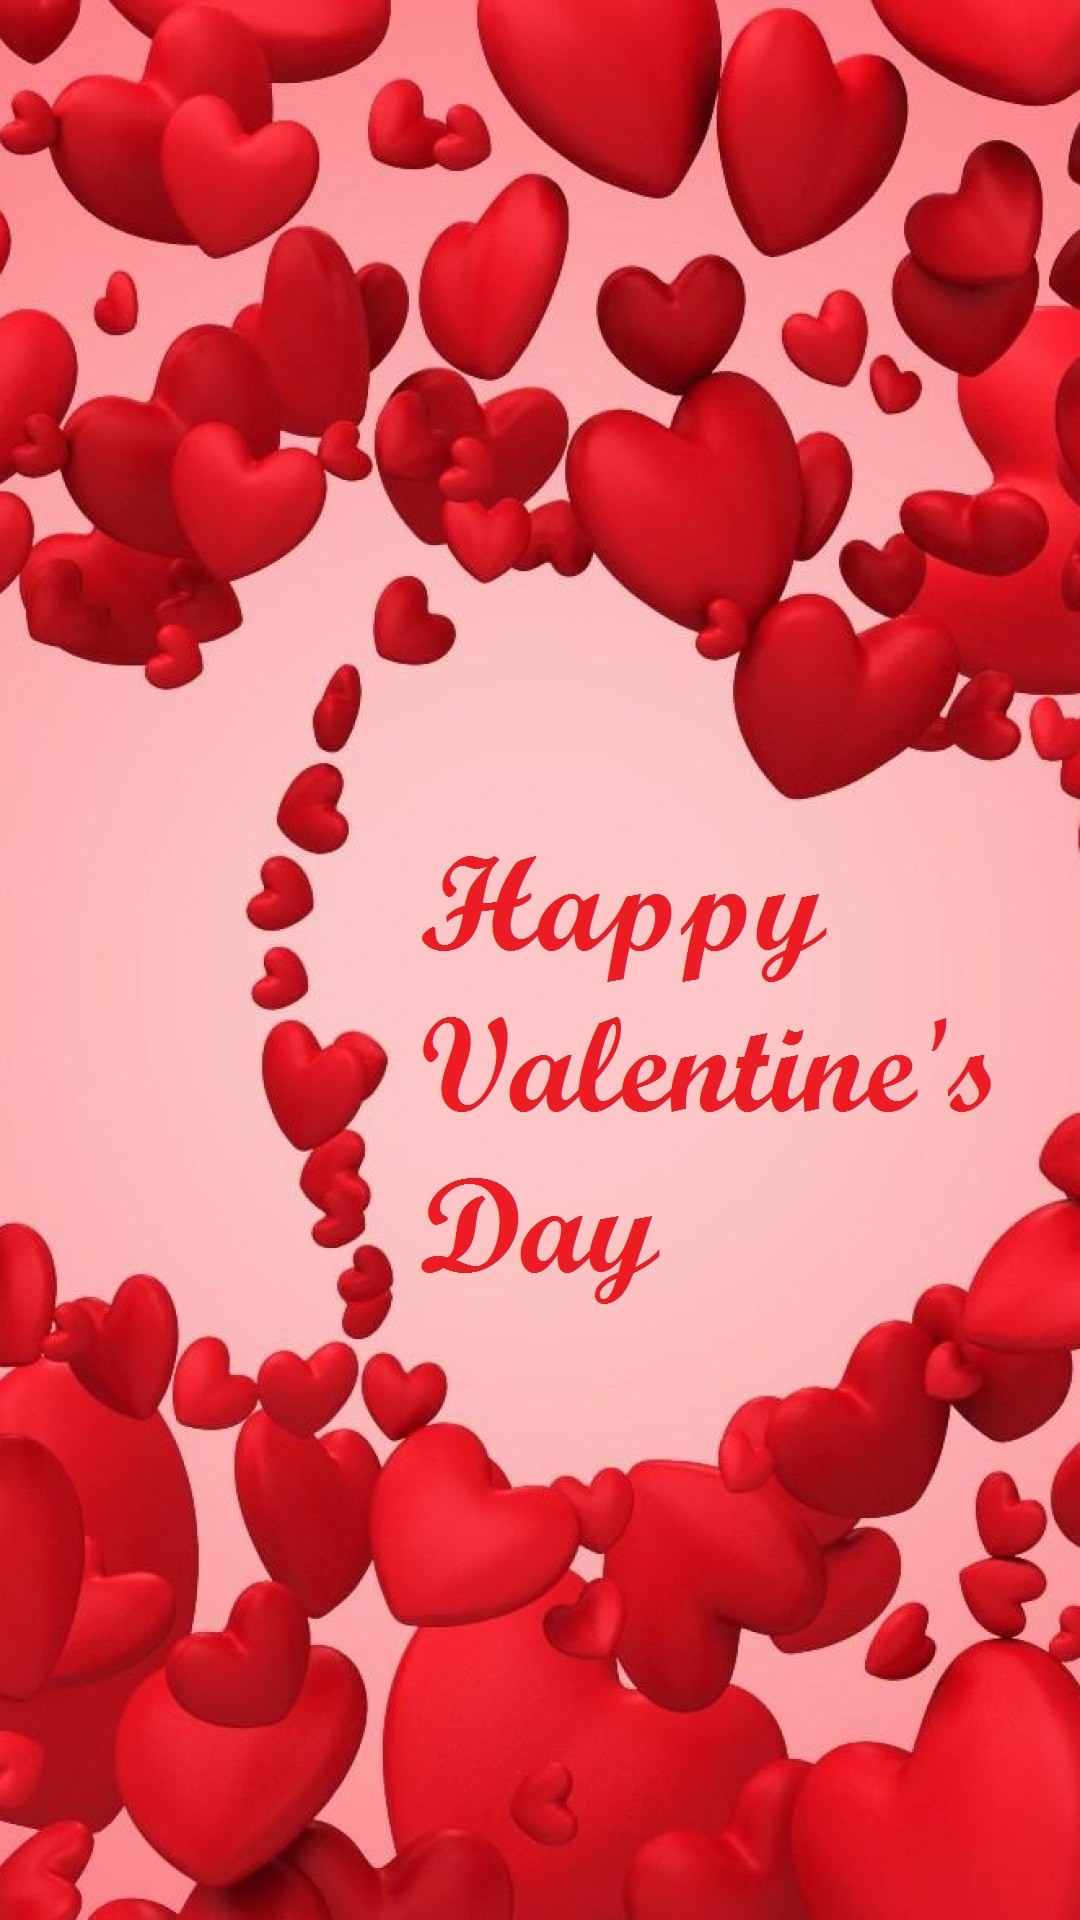 Valentines Day Wallpaper 76 Images